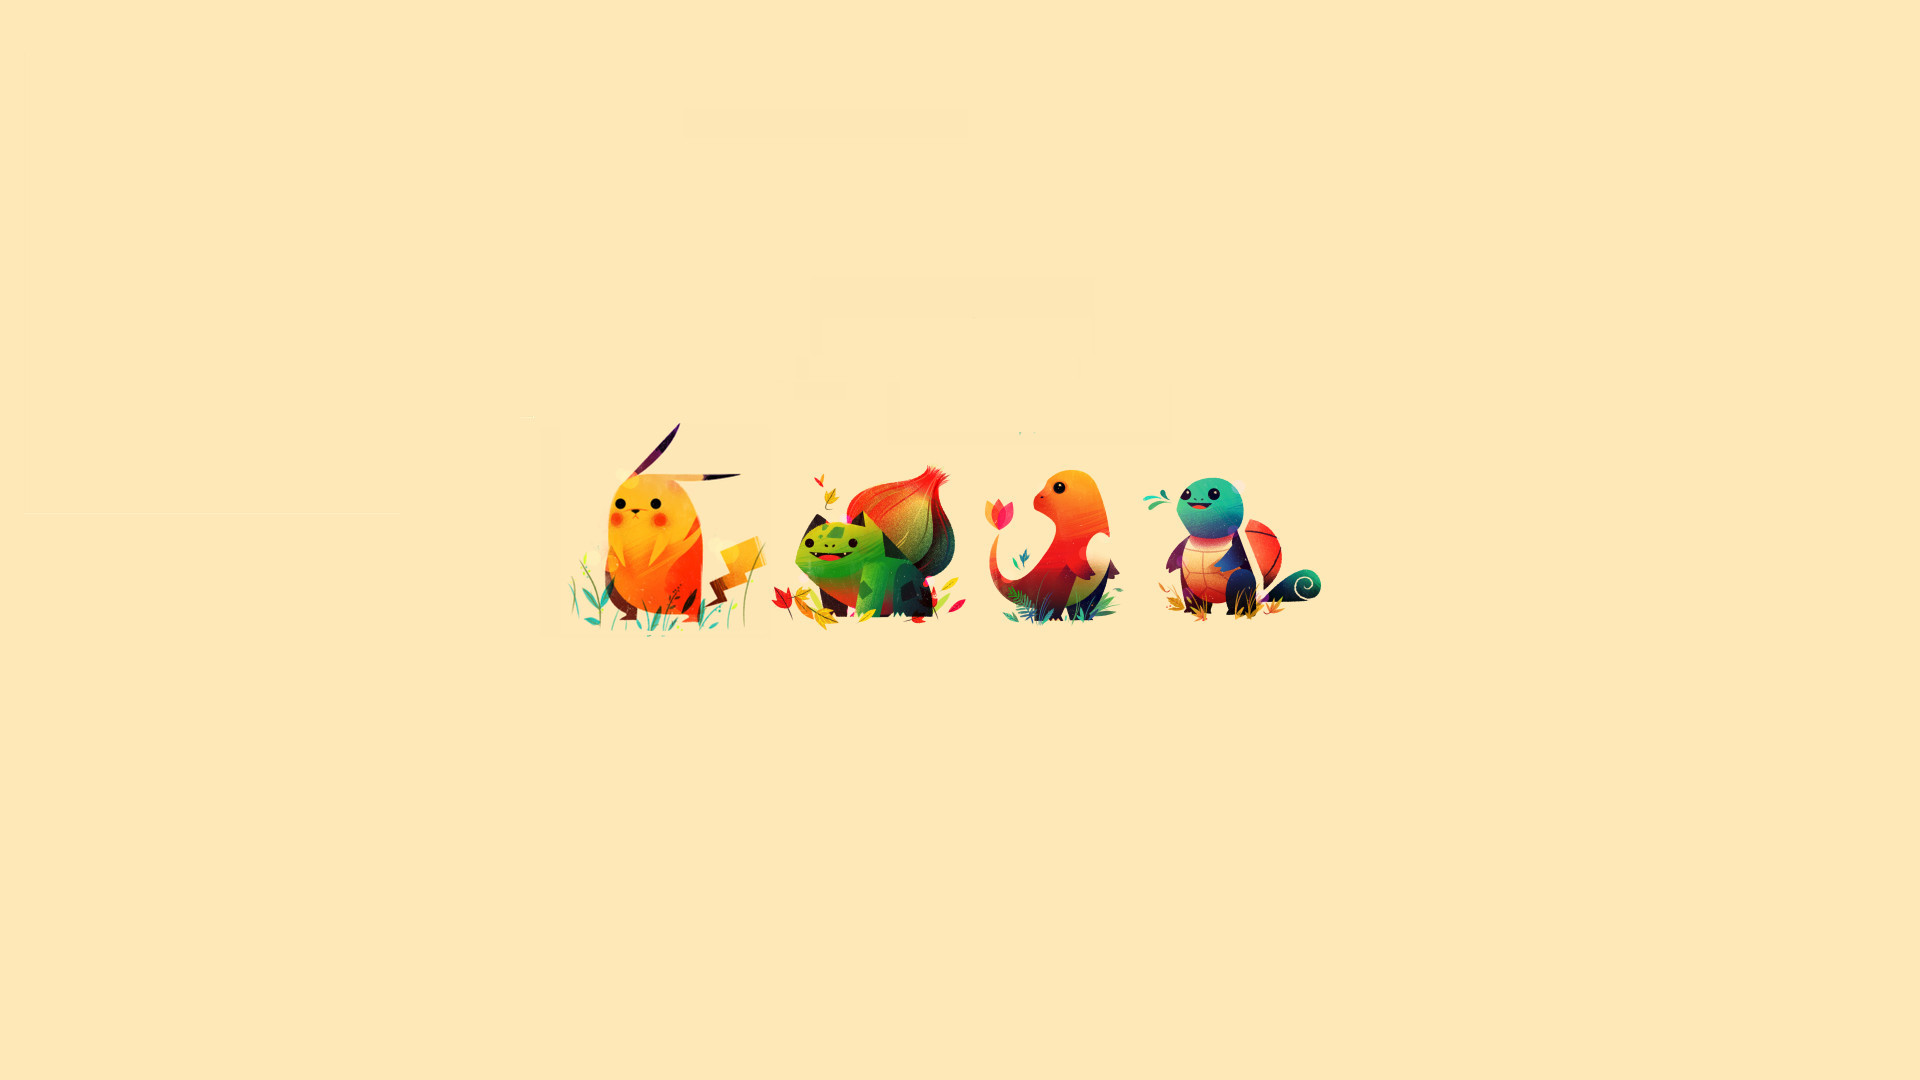 1920x1080  Pokemon Wallpaper Desktop Backgrounds